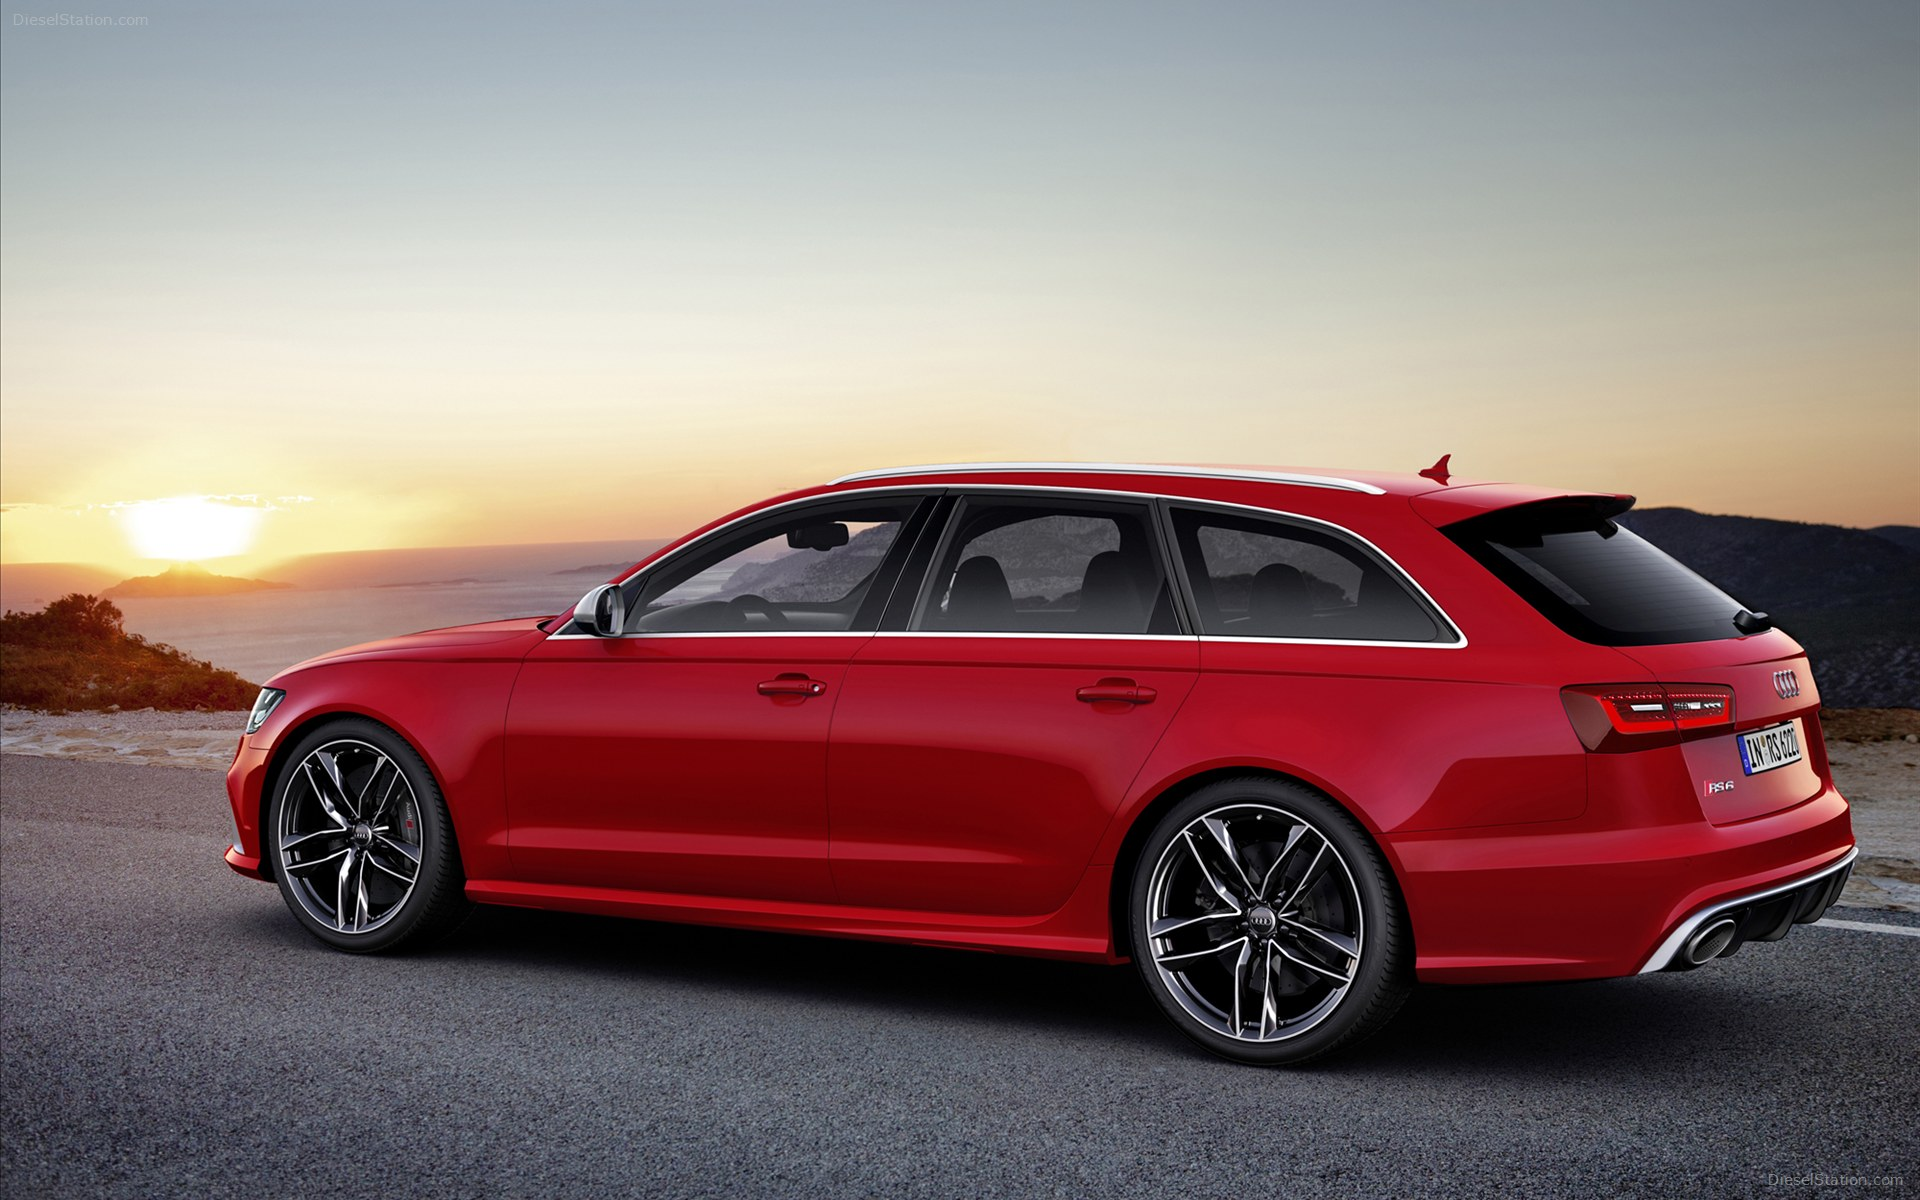 2016 audi a6 avant c7 pictures information and specs for Lunghezza audi a6 avant 2016